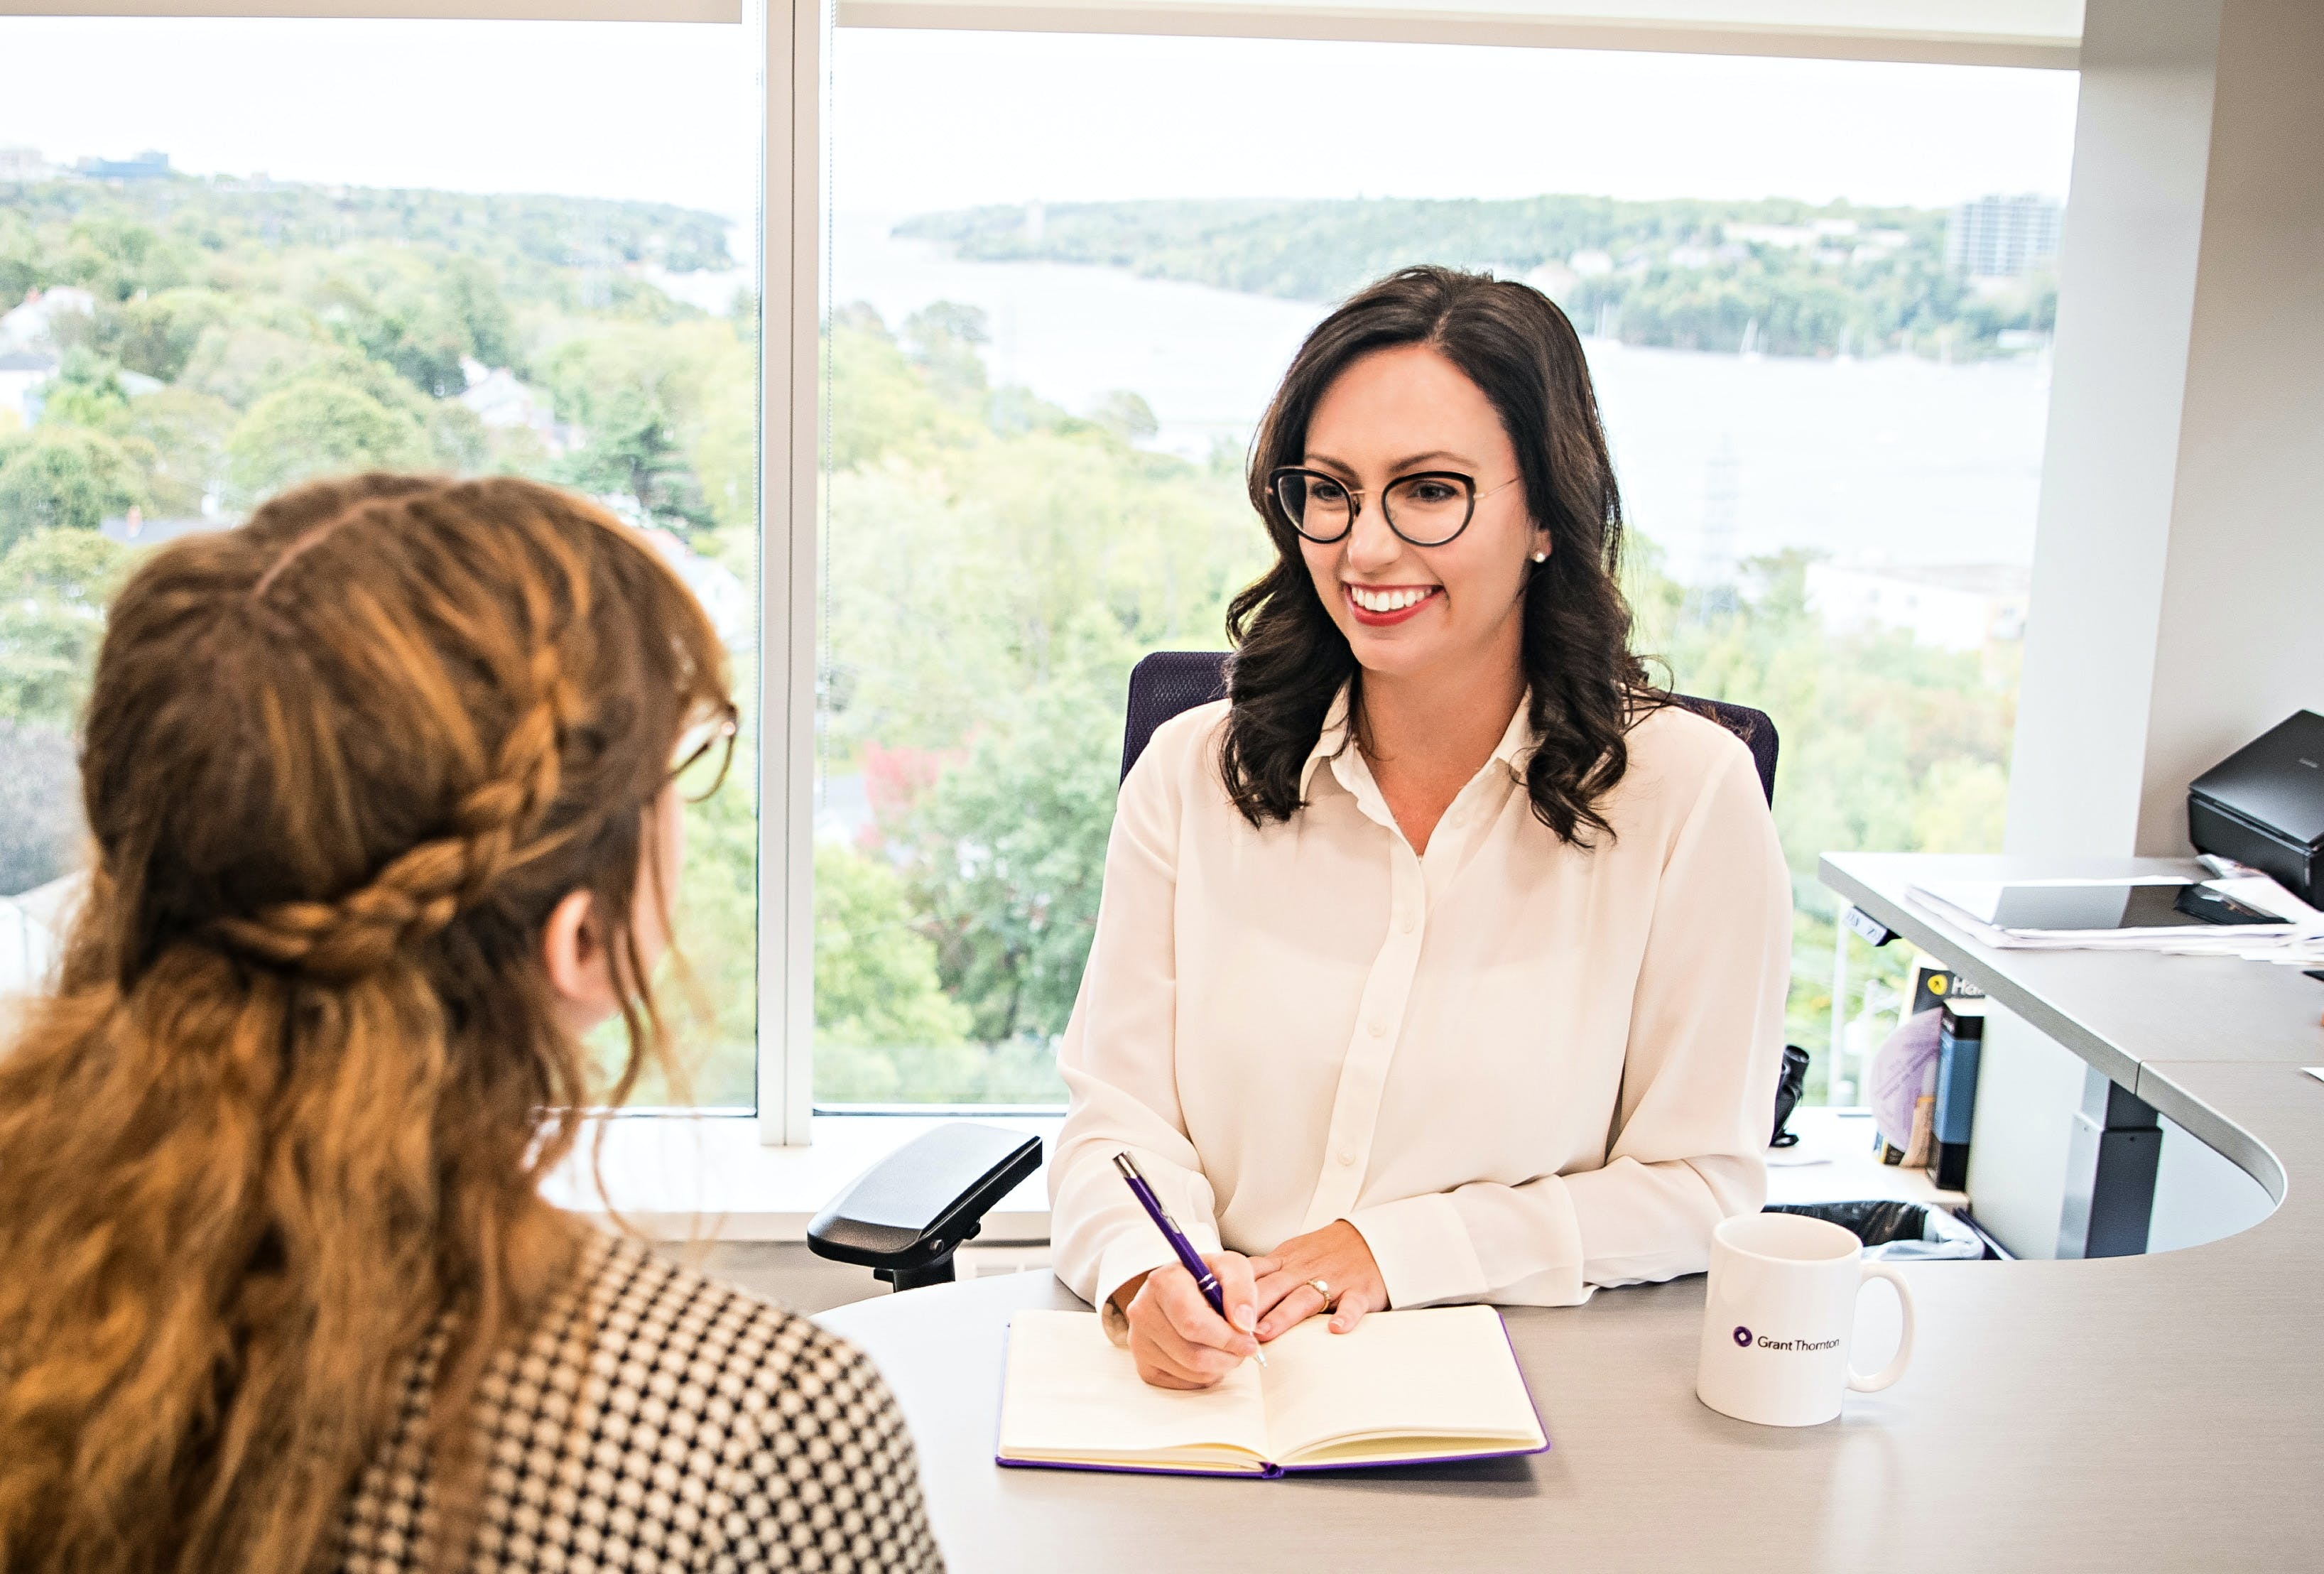 Blaire MacNeil, the senior manager at Grant Thornton Limited in Halifax, says there are many ways to save money while balancing household income and expenses.